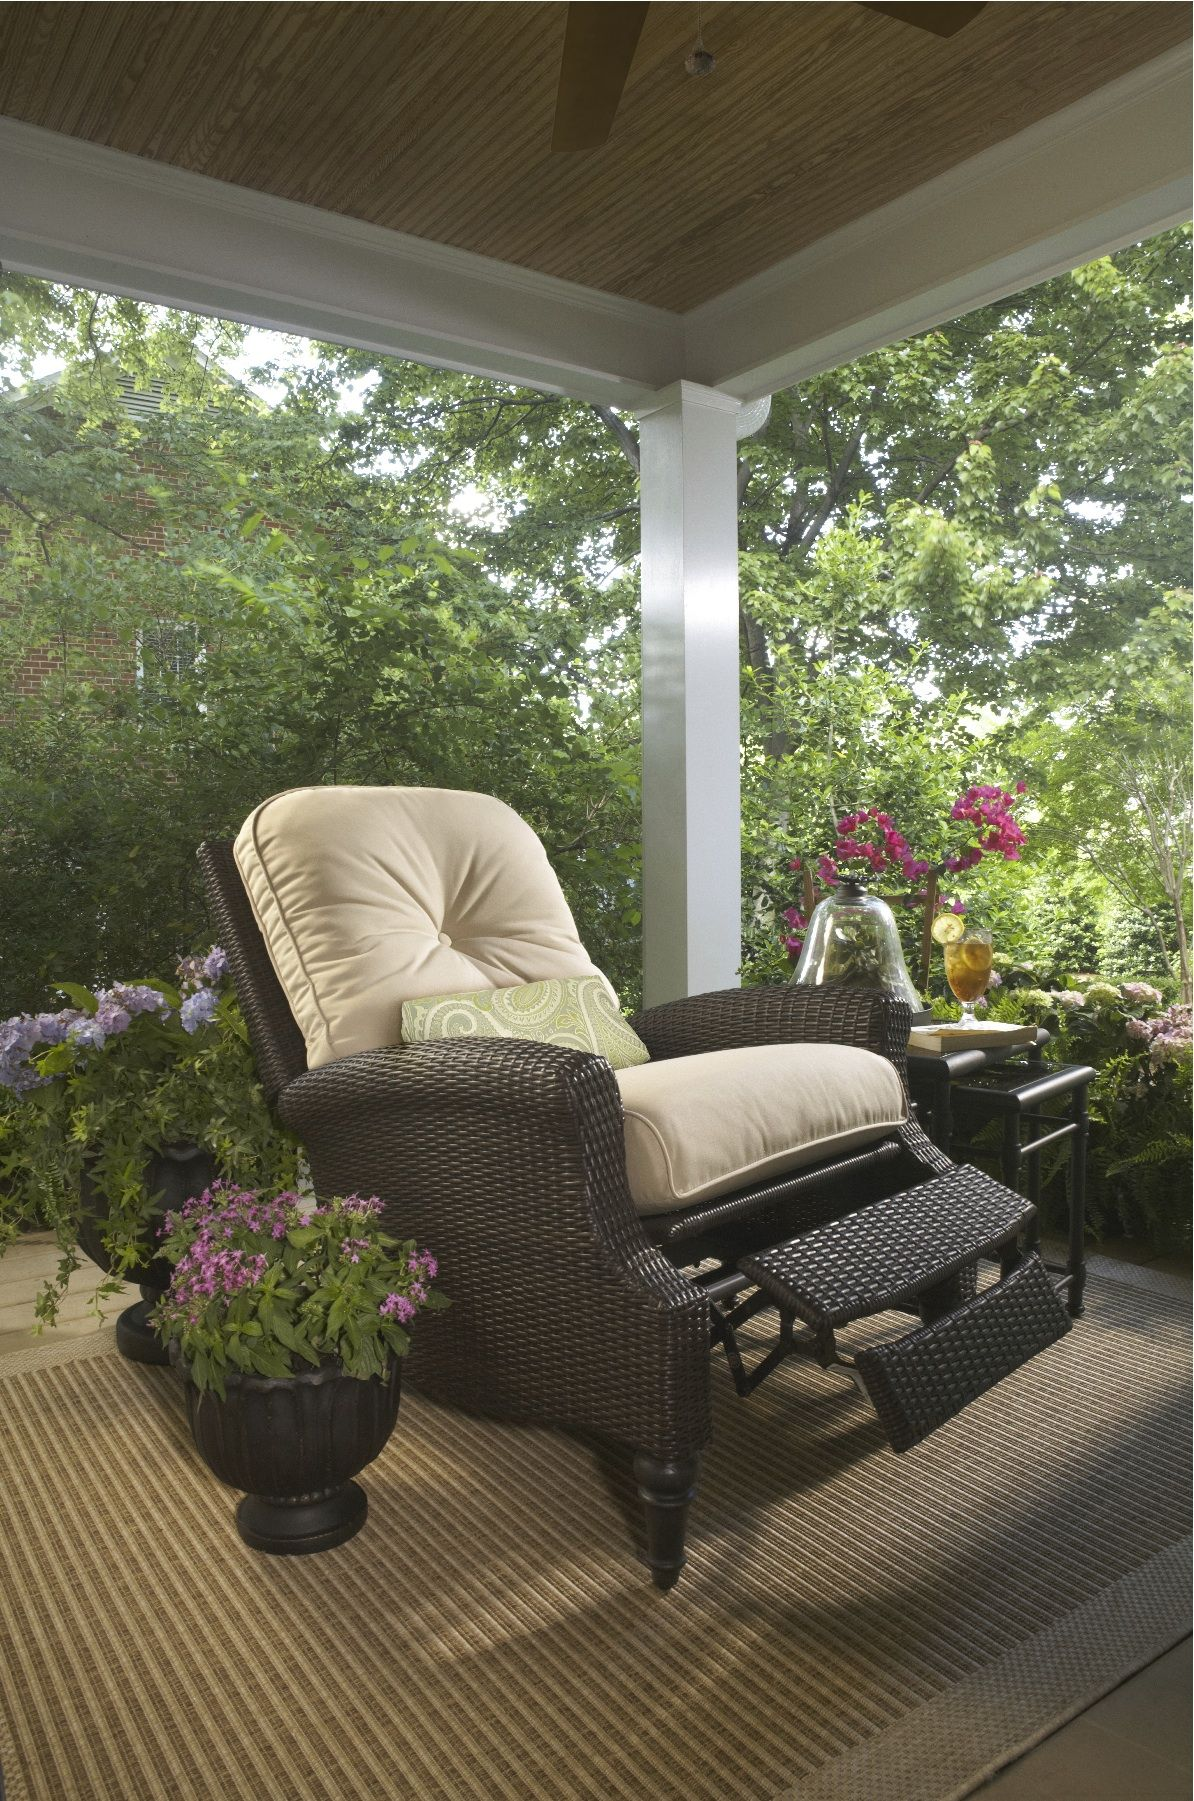 Kick Back And Relax In This Outdoor Recliner Outdoor